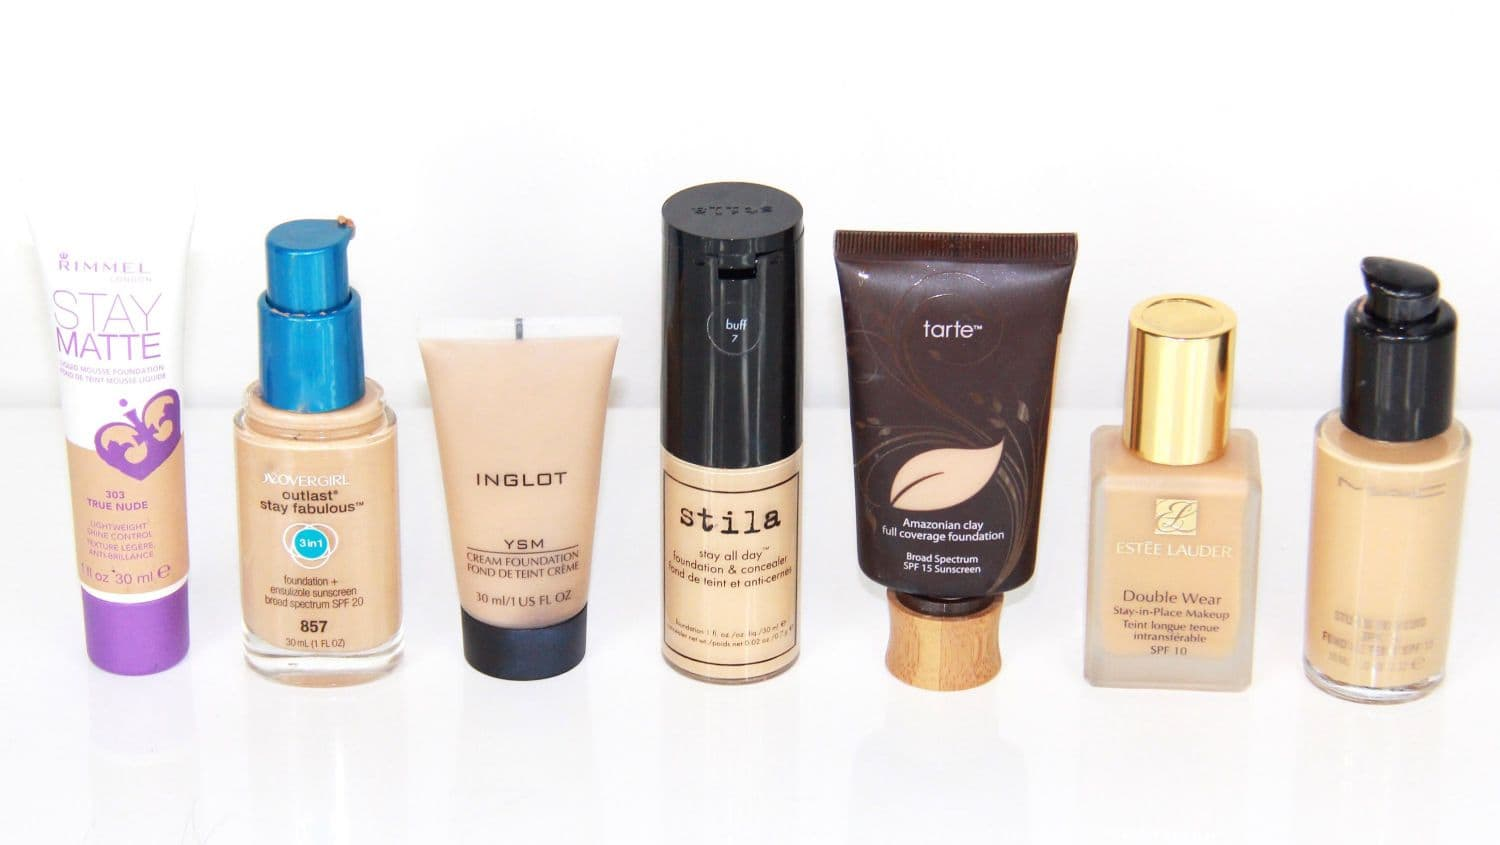 Oily skin foundations